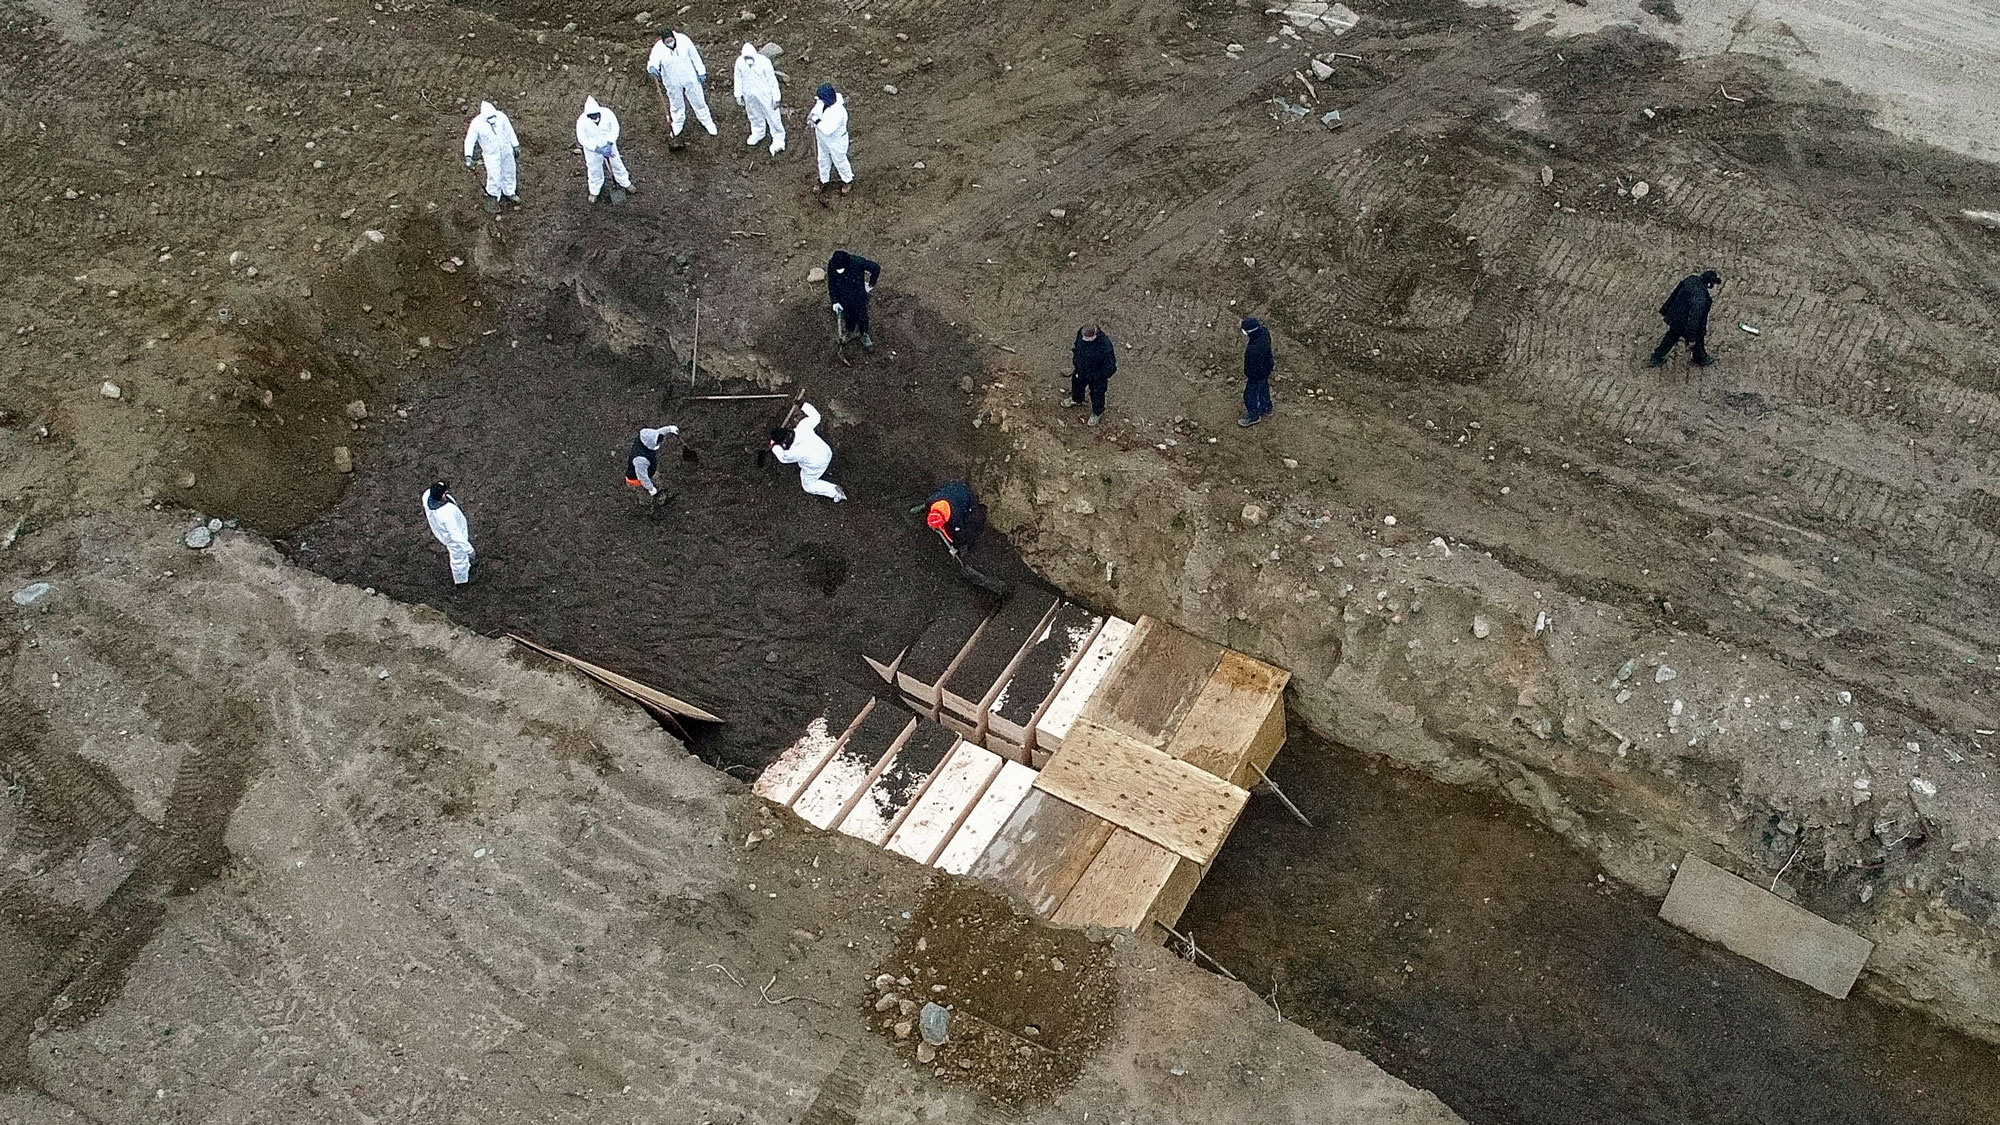 Workers bury bodies on Hart Island, a New York City public cemetery, in April.